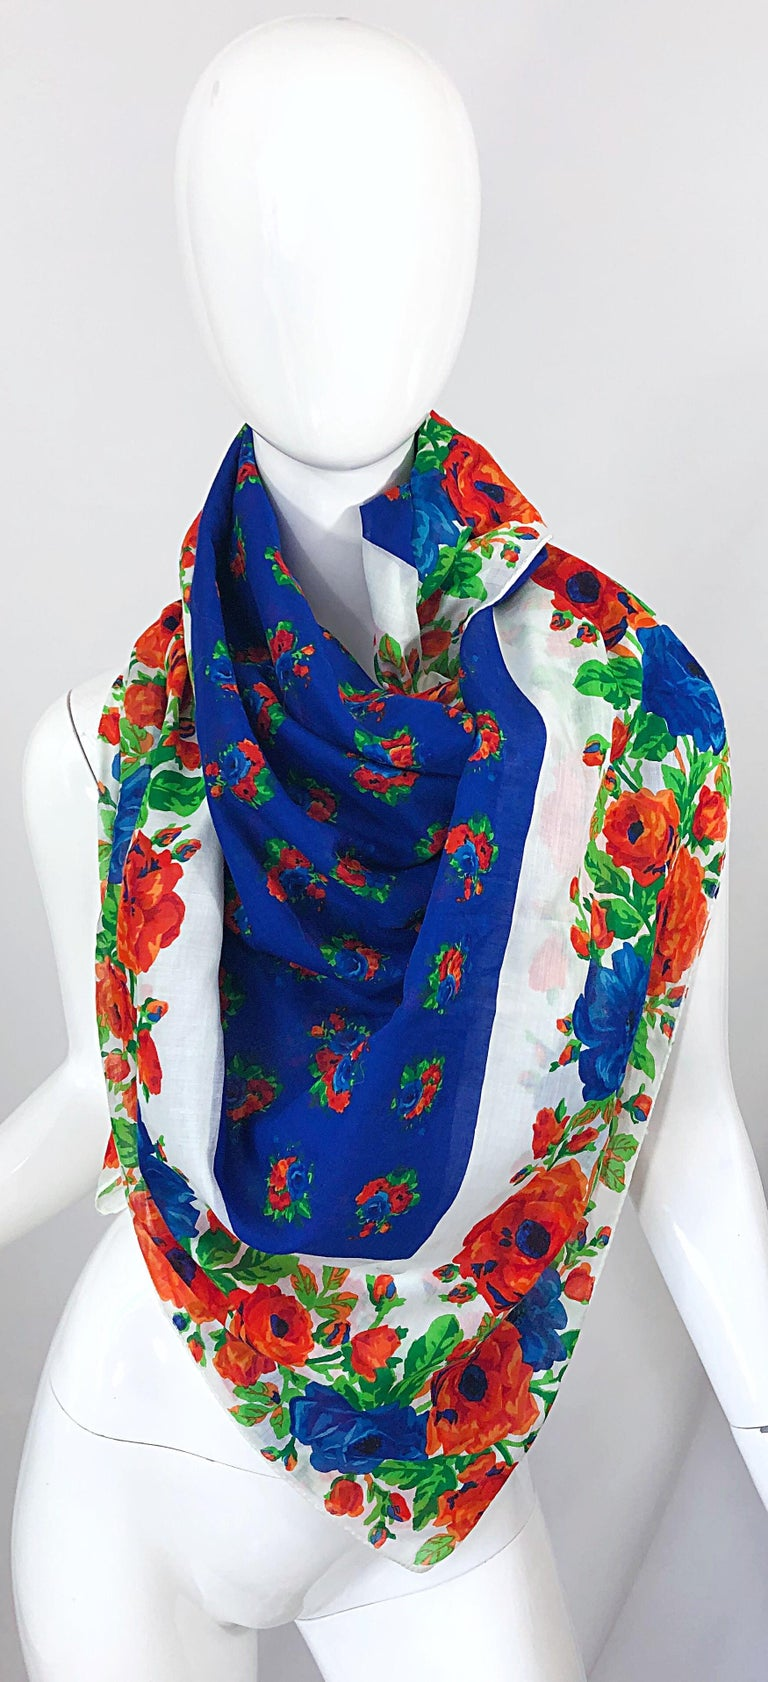 Huge Vintage Yves Saint Laurent YSL 54 x 54 Inch Cotton Voile Scarf Parero Shawl In Excellent Condition For Sale In Chicago, IL